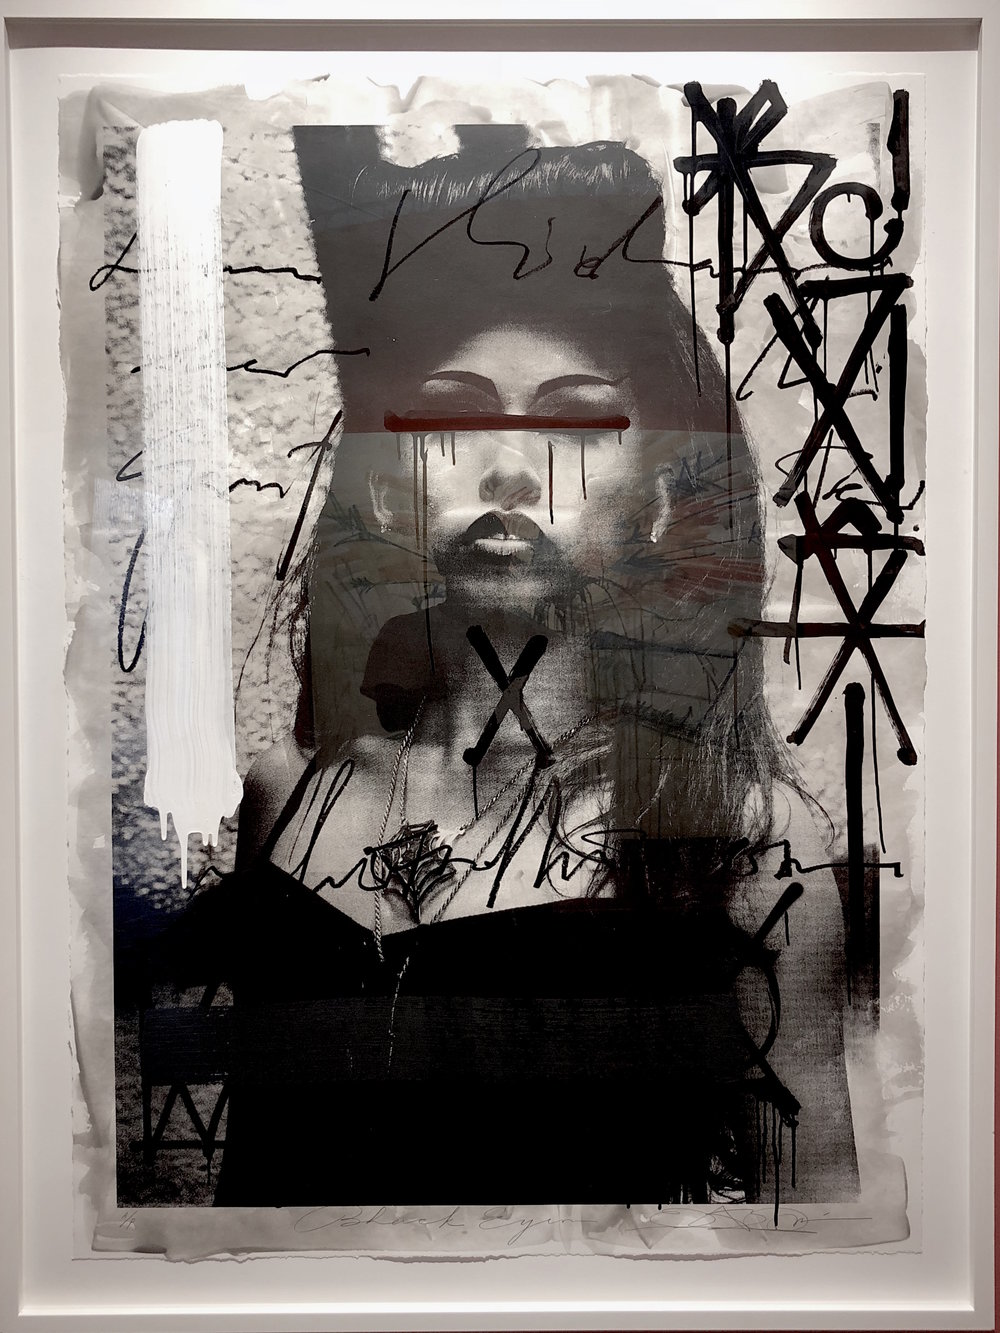 RETNA / Black Eyes / 2012 / Hand-painted photograph / 60 x 40 inches